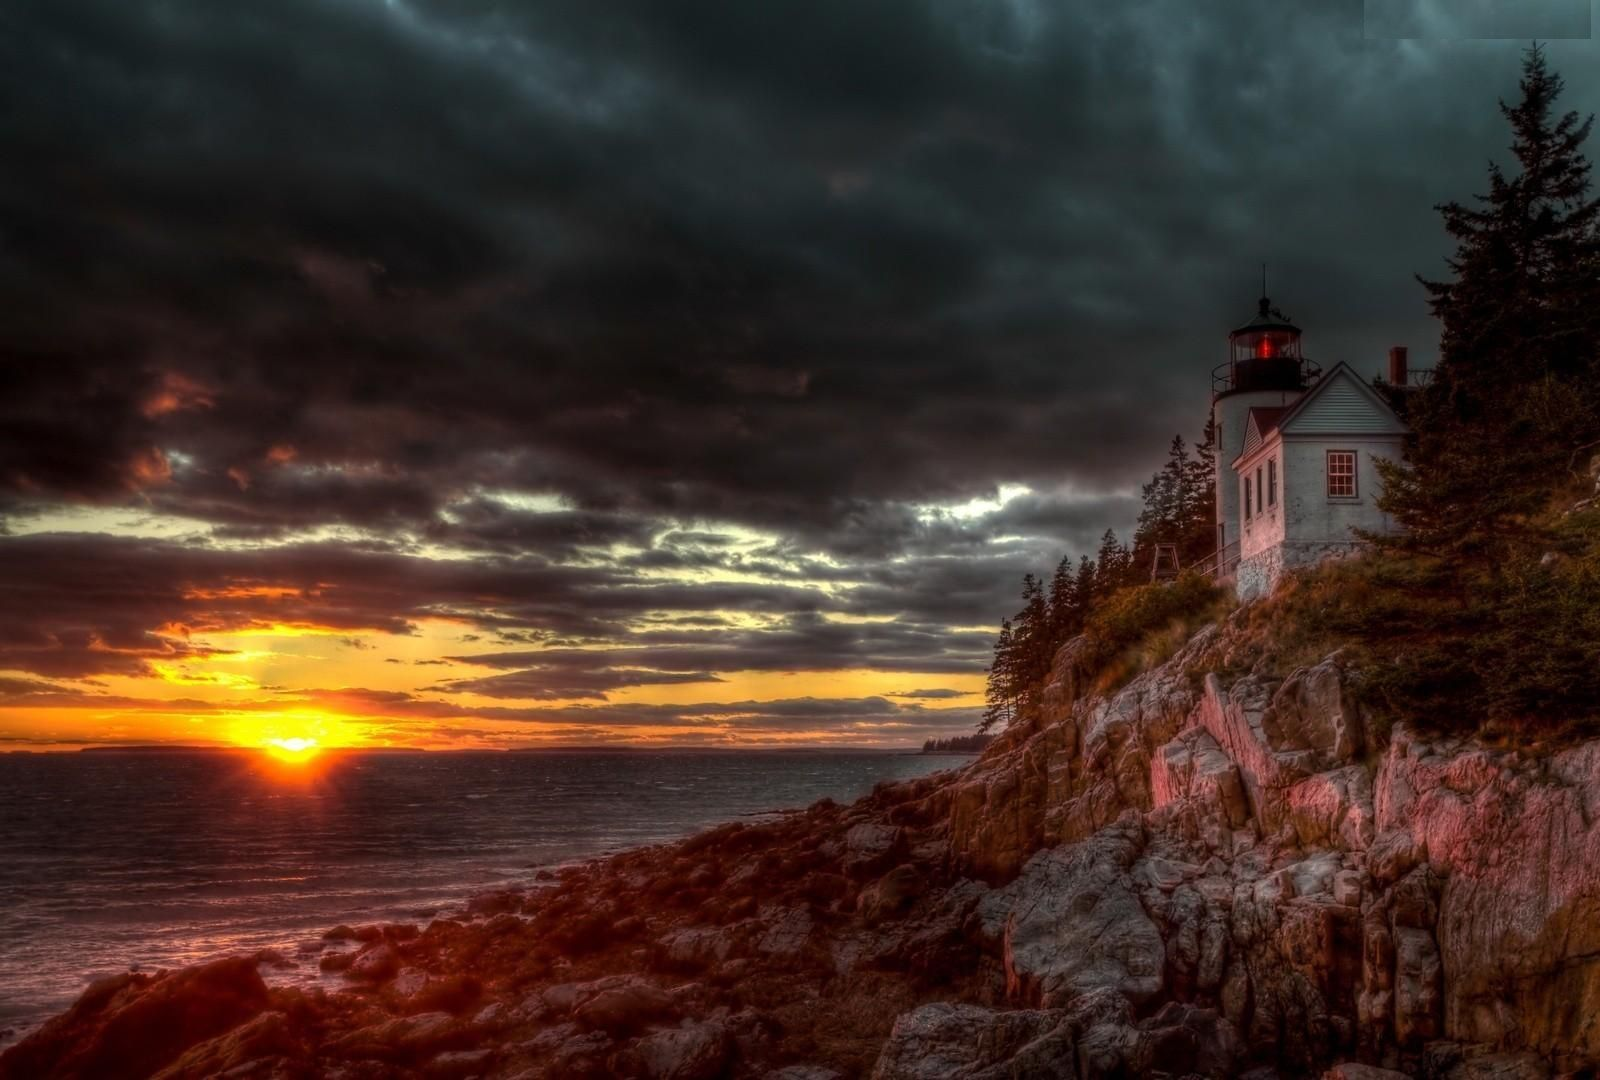 Bass Harbor Acadia National Park Sunset Clouds Cliff Fall Nature wallpaper